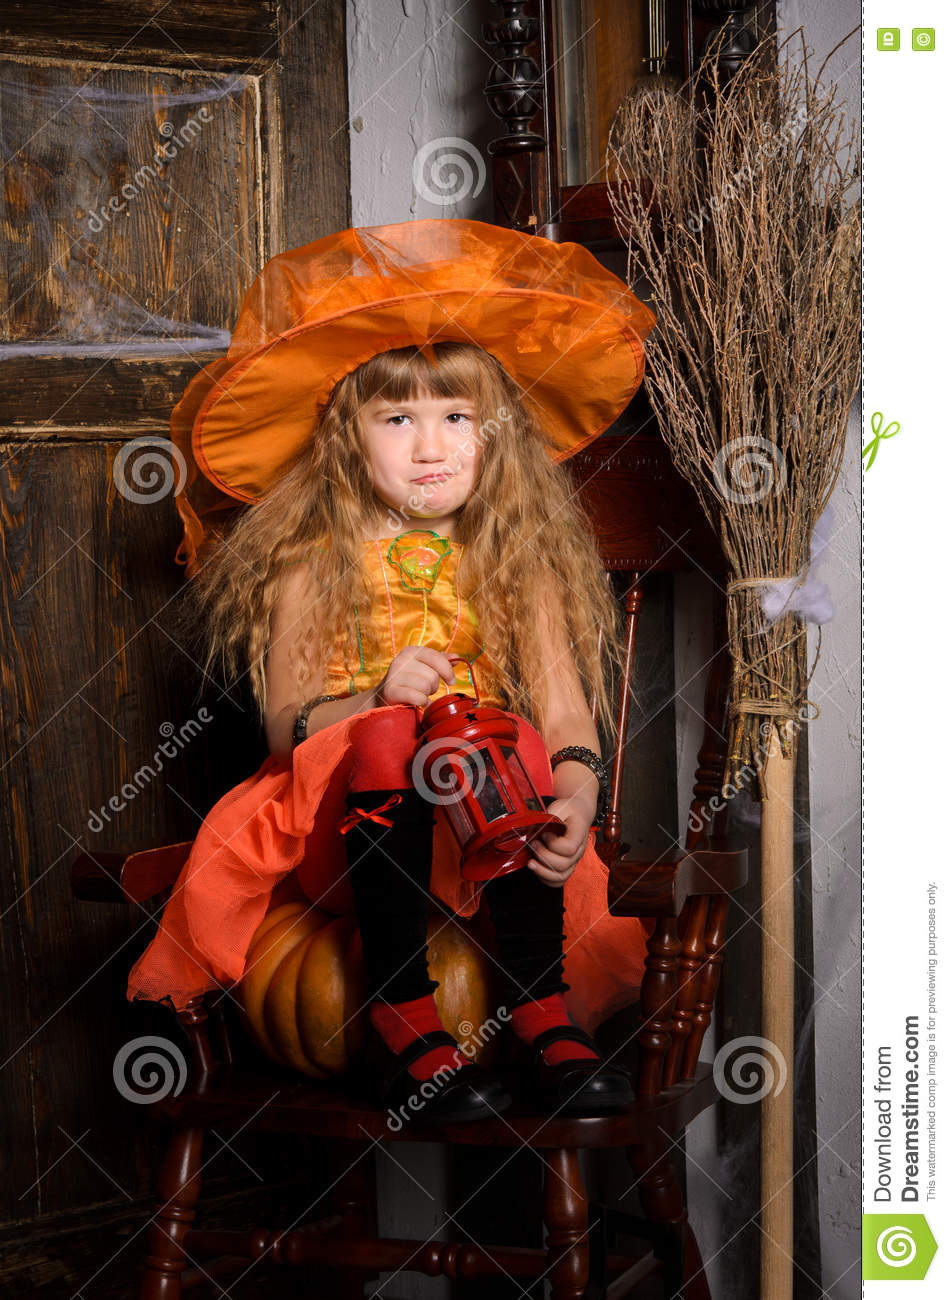 Sad Halloween Witch Girl In Costume With Broom Stock Photo - Image ...